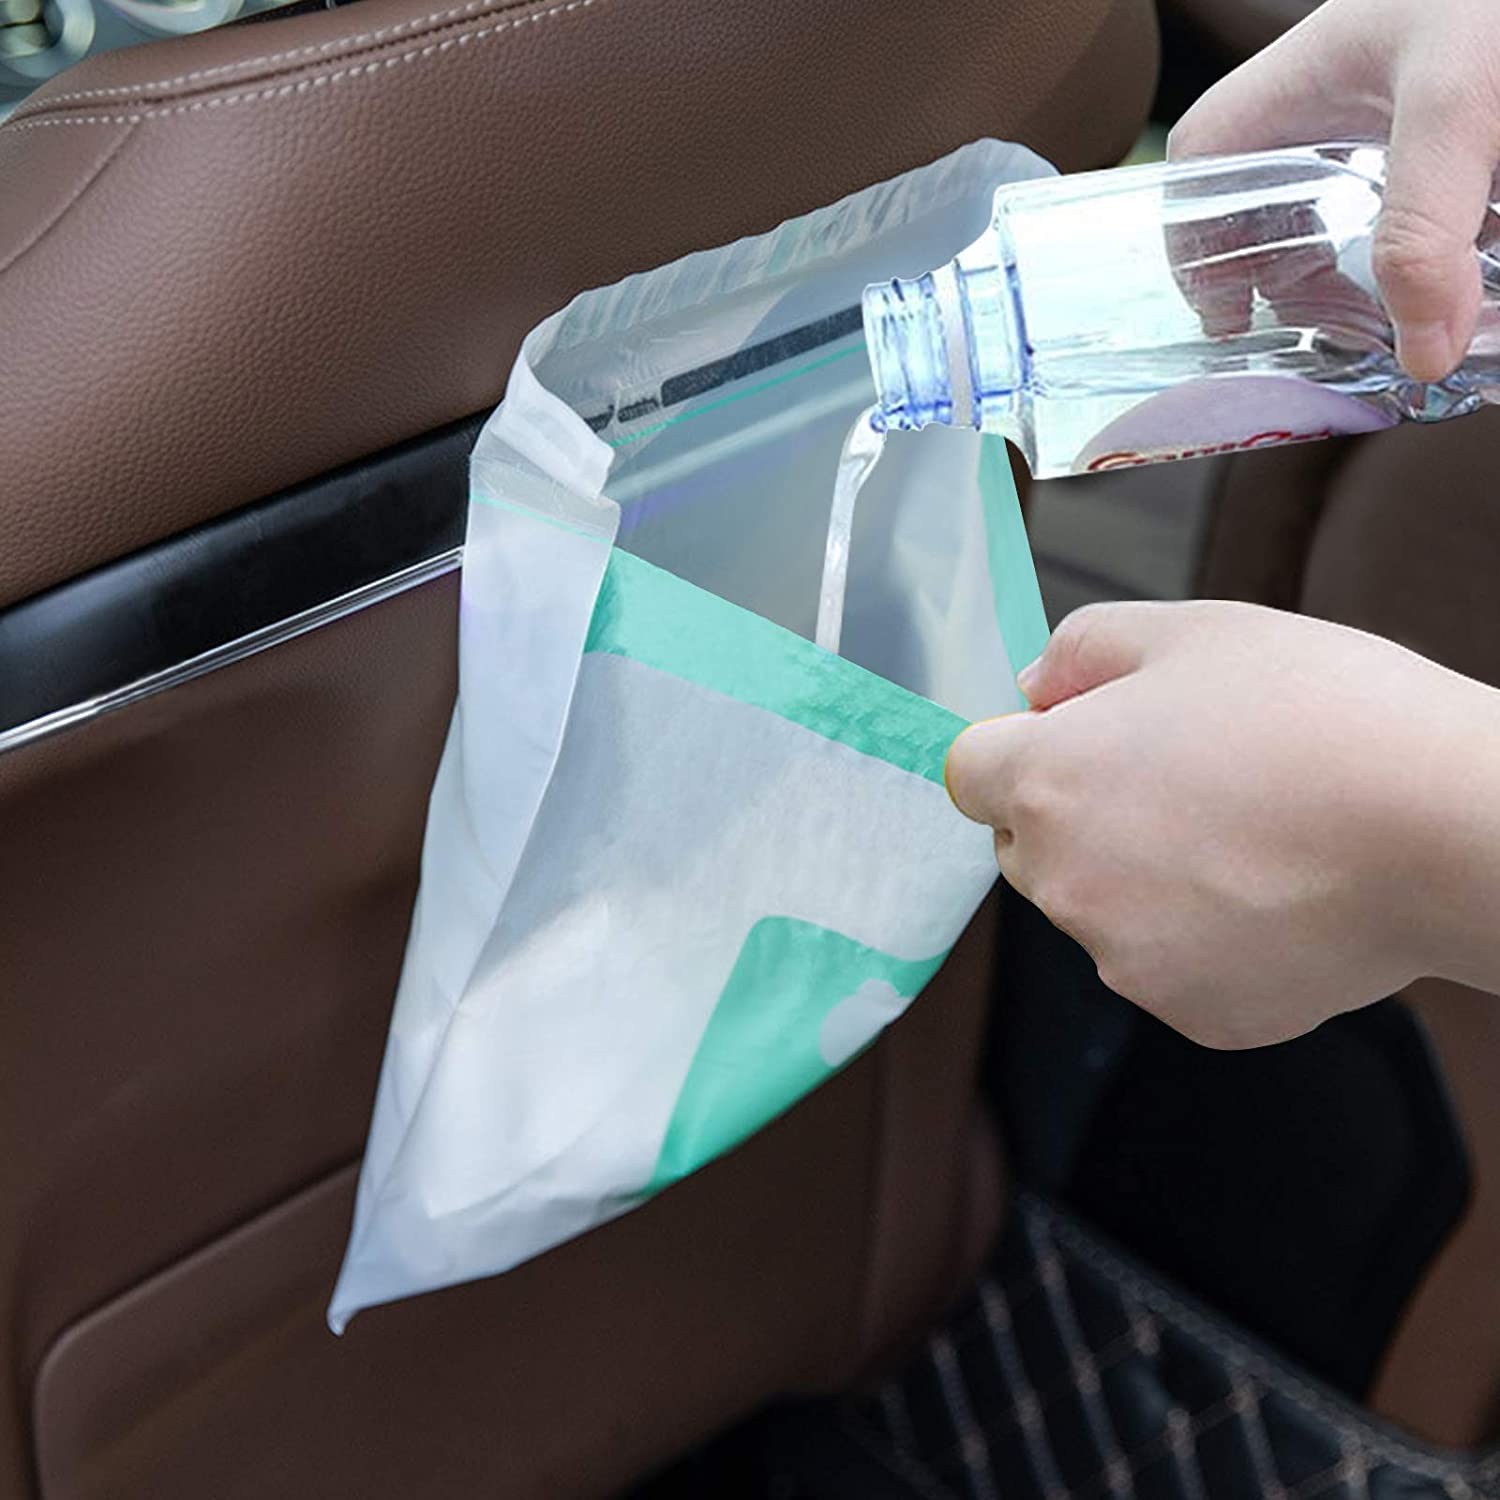 30 Pcs Car Trash Bags,Self-adhesive Waterproof Leakproof Portable Auto Trash Can,Large Garbage Bag for Car Office Kitchen Bathroom